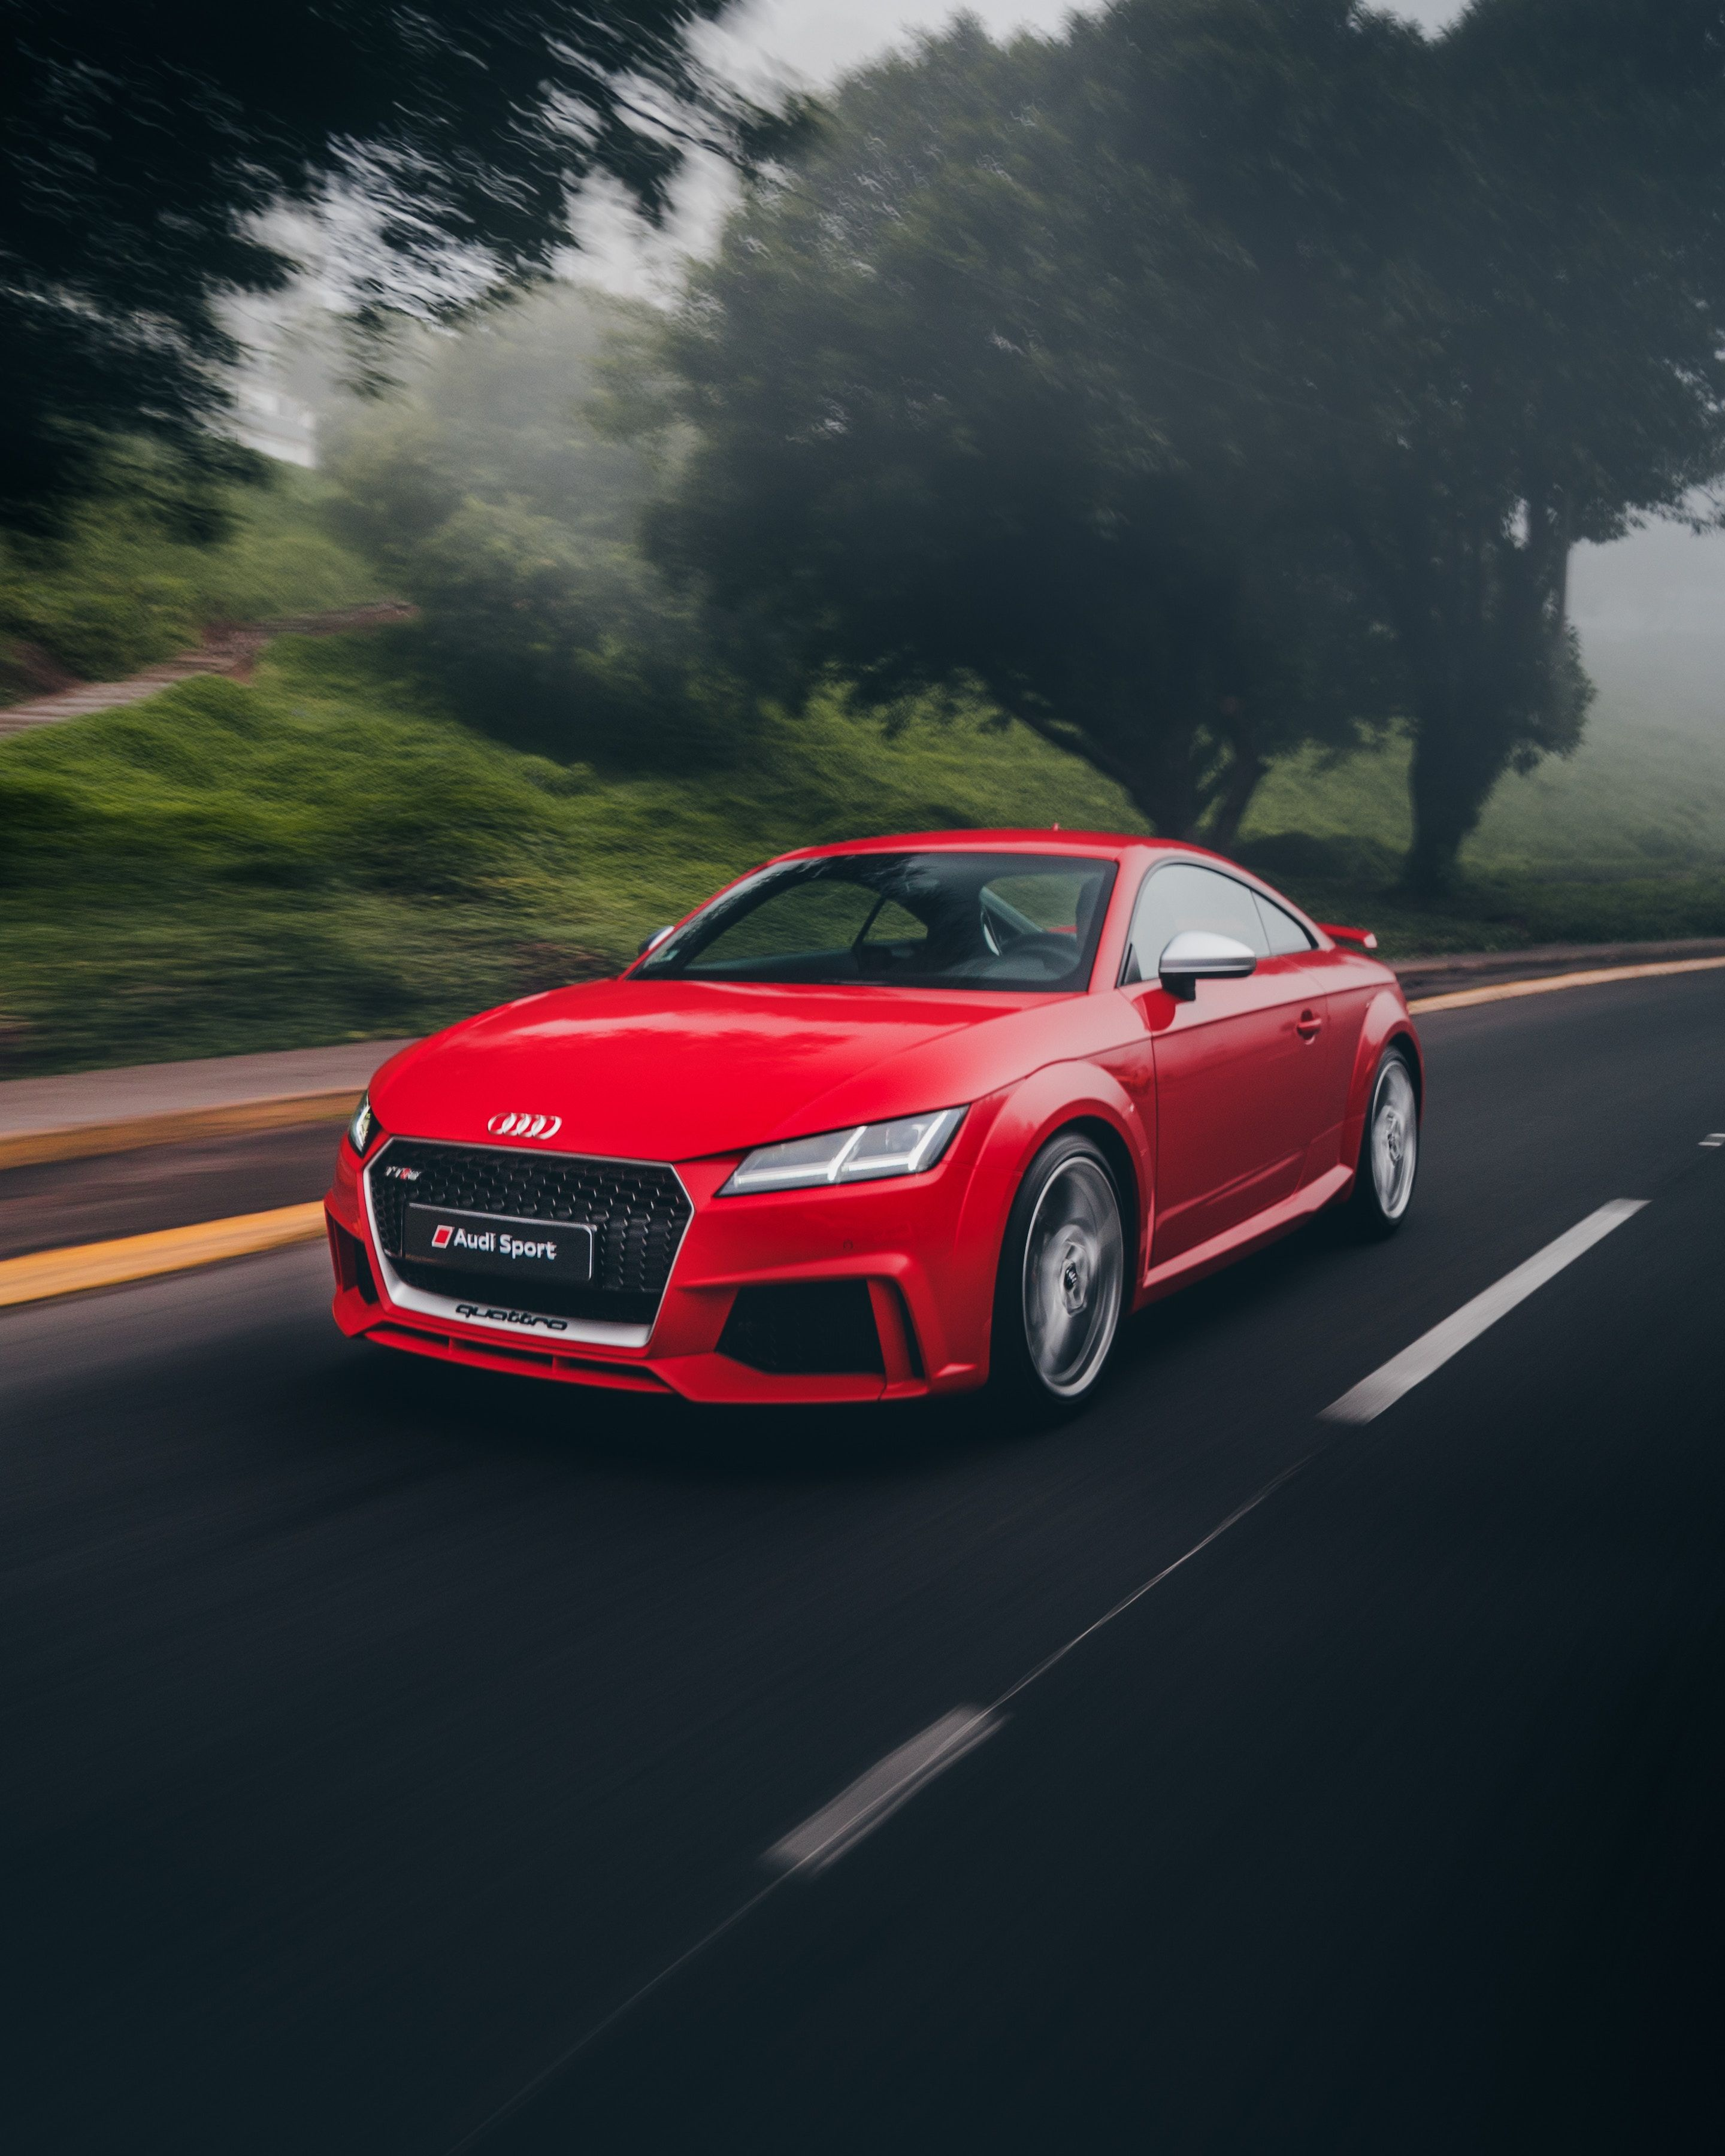 Audi Sports Car Give The Speed You Like With Images Red Audi